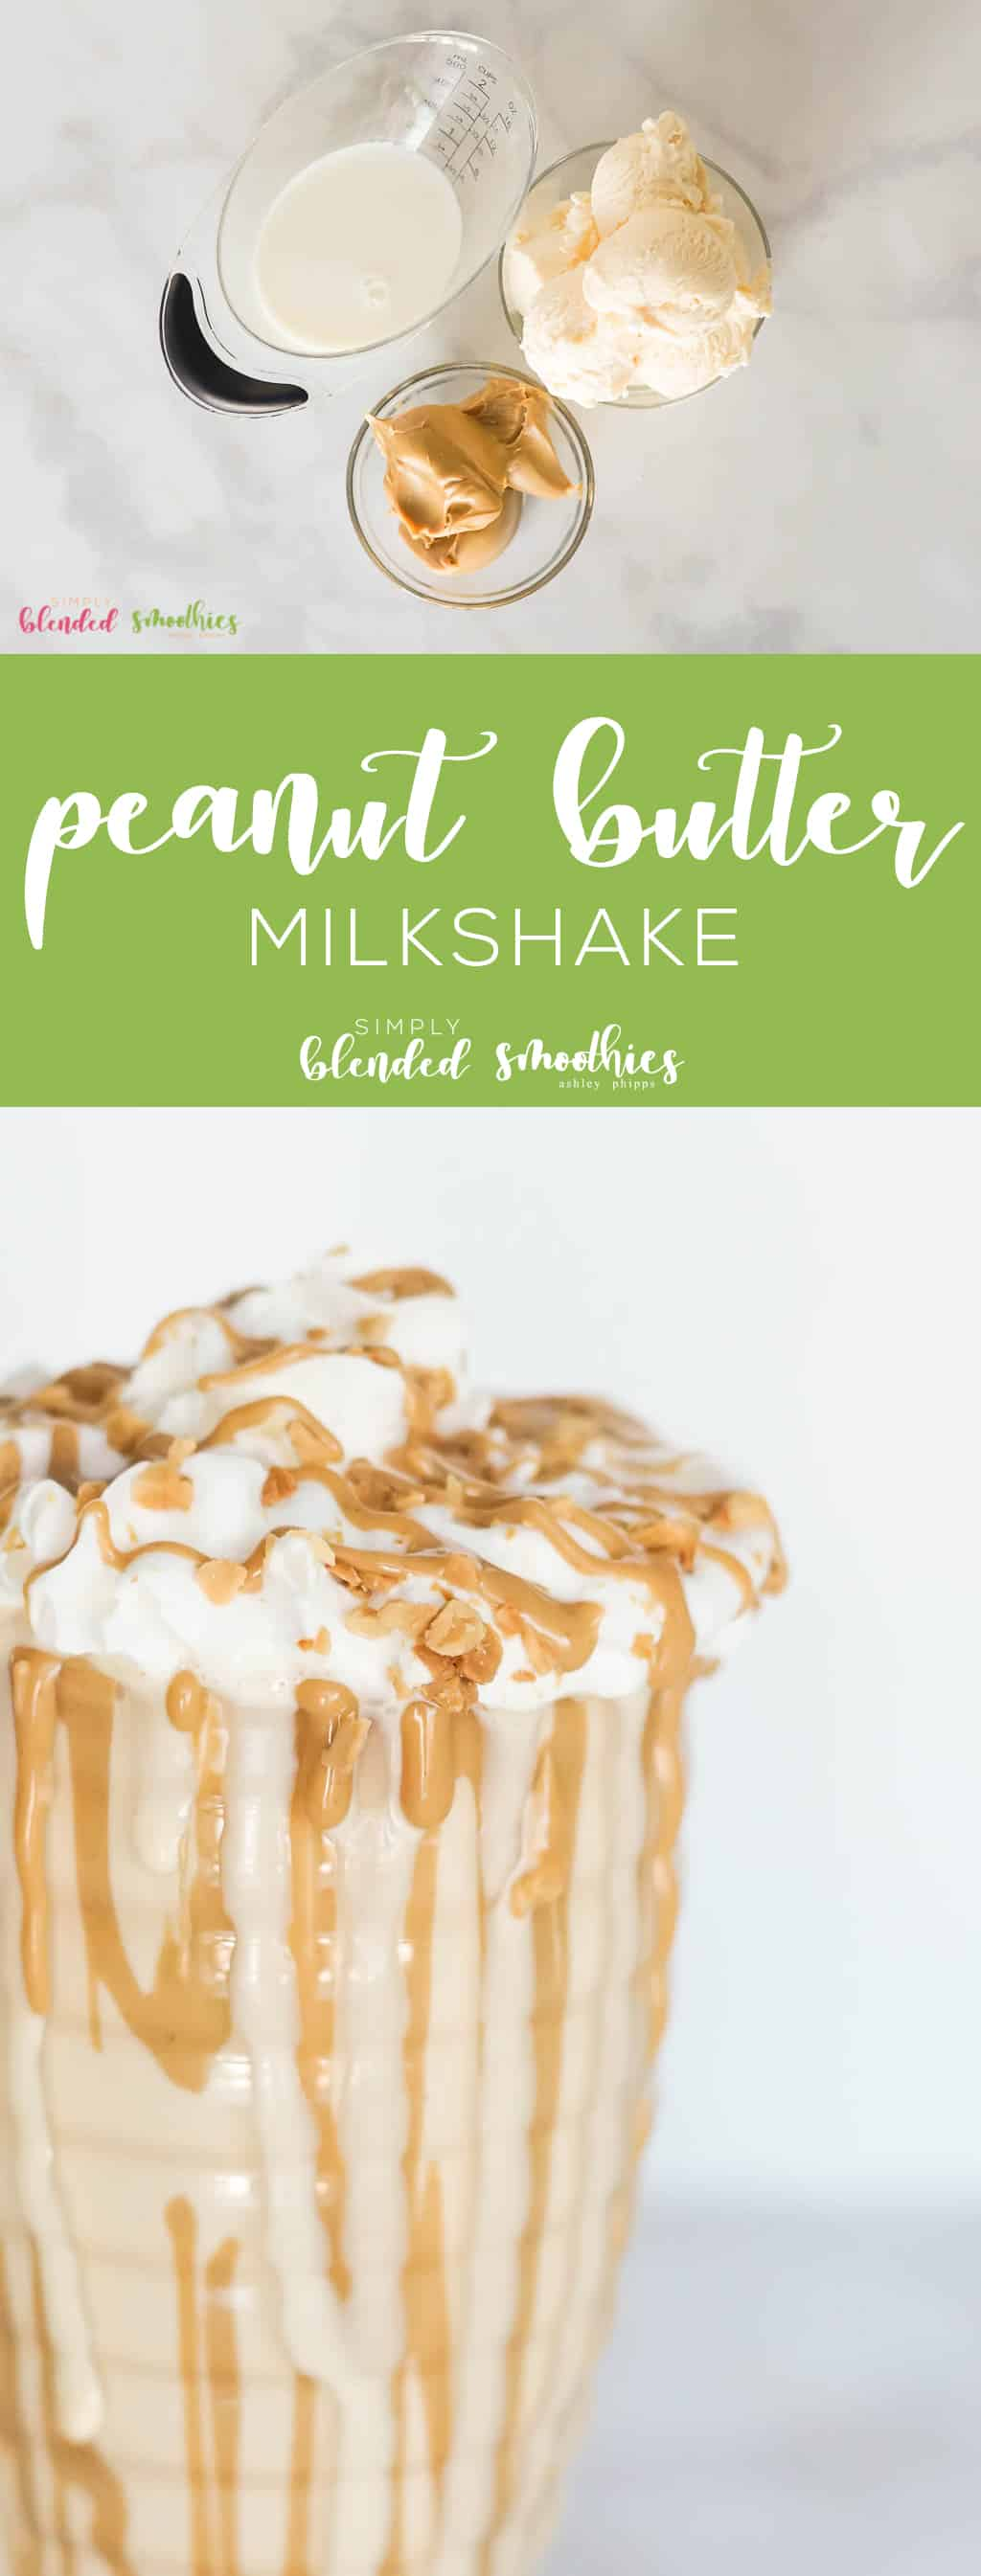 Peanut Butter Milkshake - this delicious 3 ingredient peanut butter milkshake is easy to make and the perfect treat